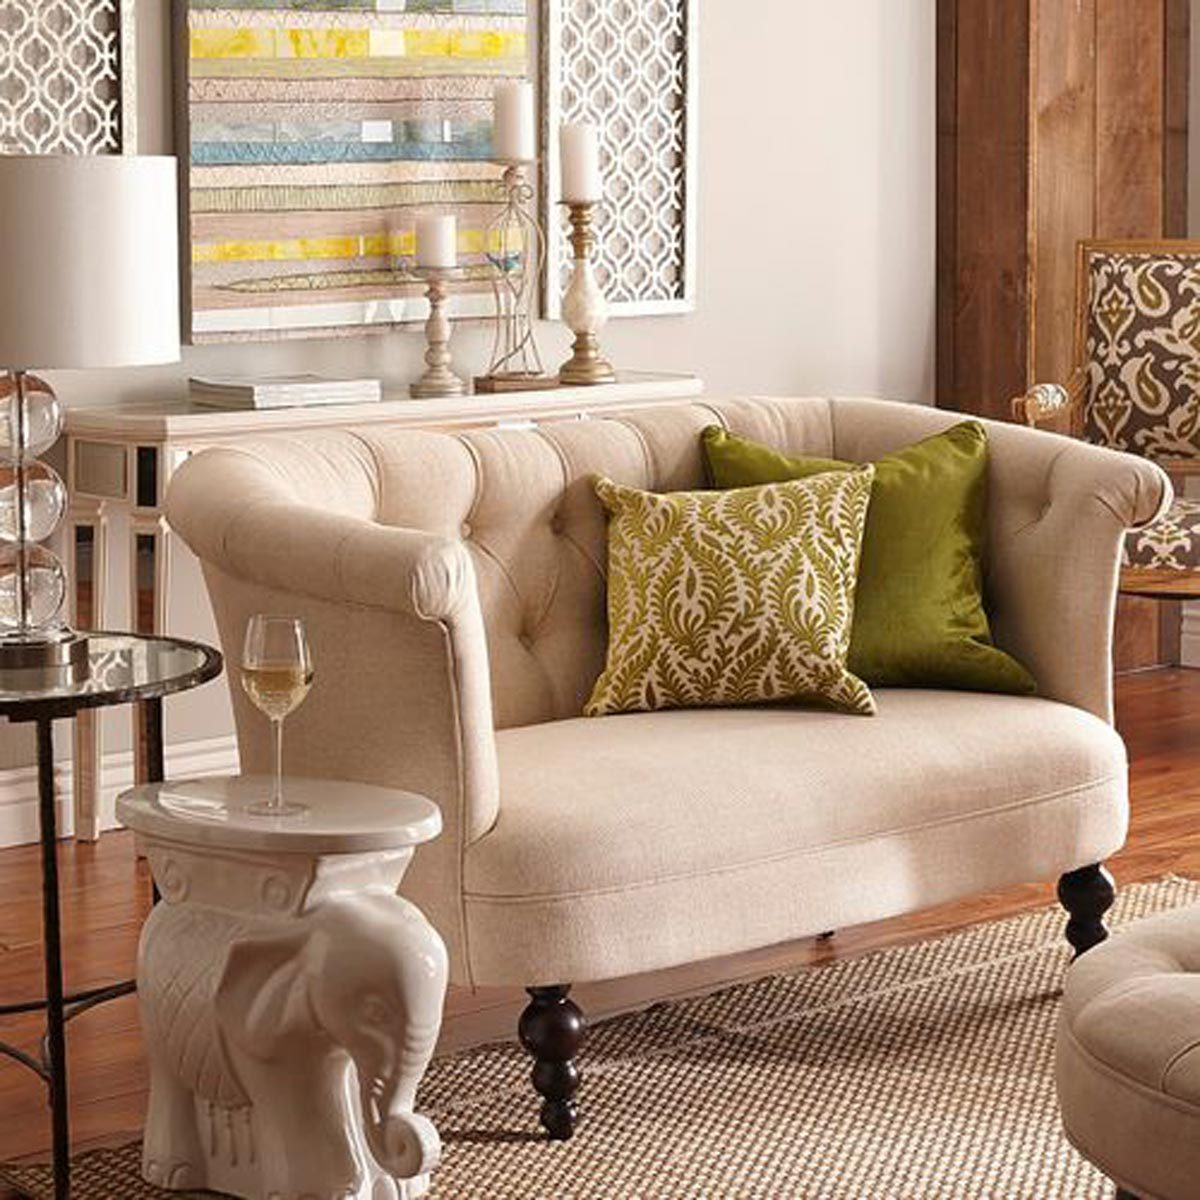 Best Top 11 Home Décor Trends For 2019 This Month